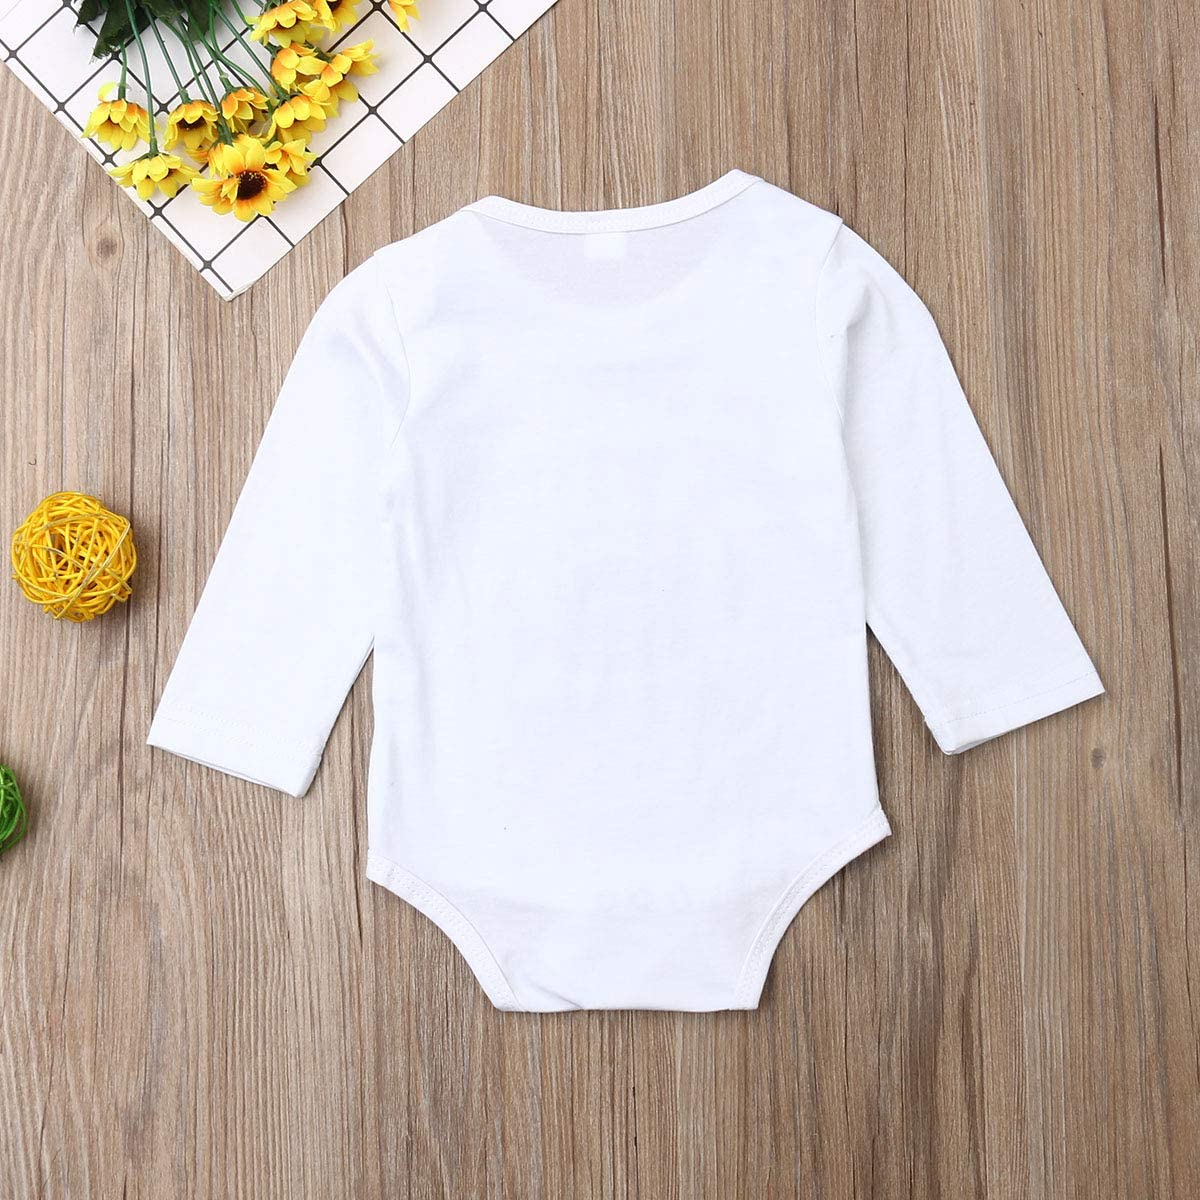 Puloru Football Infant Baby Romper Unisex Baby Boys Girl Short Sleeve Letter Print One Piece Bodysuit Sequin Headband Clothes